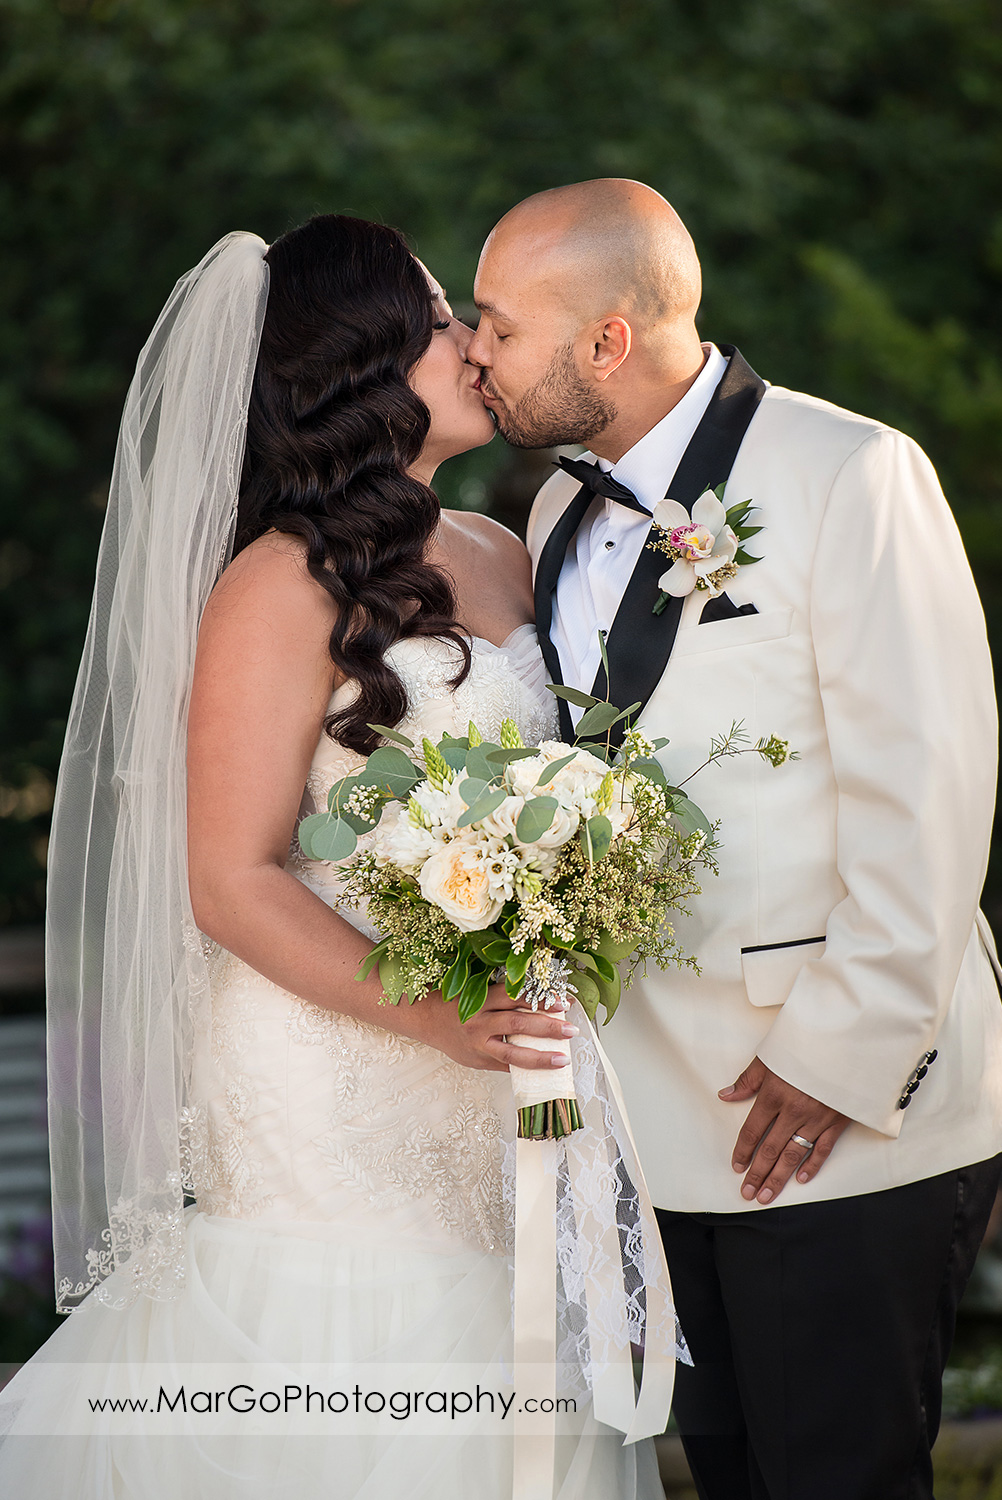 first kiss as husband and wife during wedding ceremony at Sunol's Casa Bella